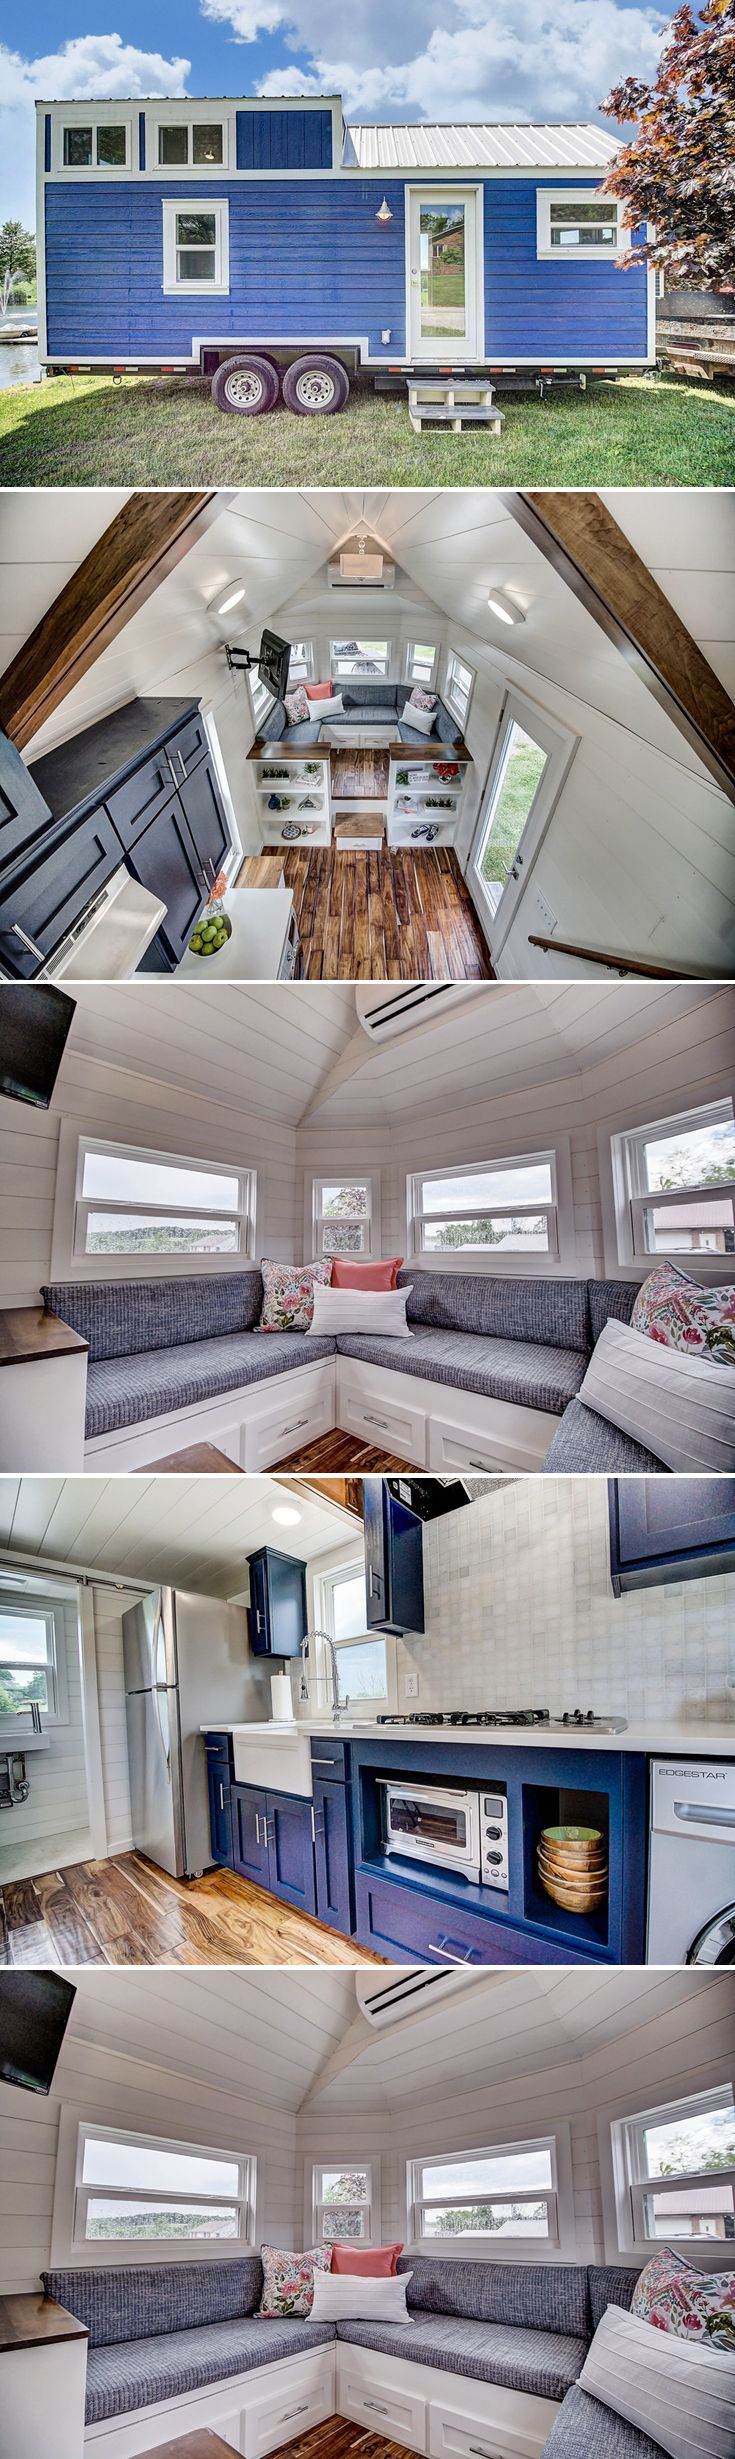 This Attractive Blue Nantucket Type Tiny Home Was Constructed By Trendy Tiny Residing. T…